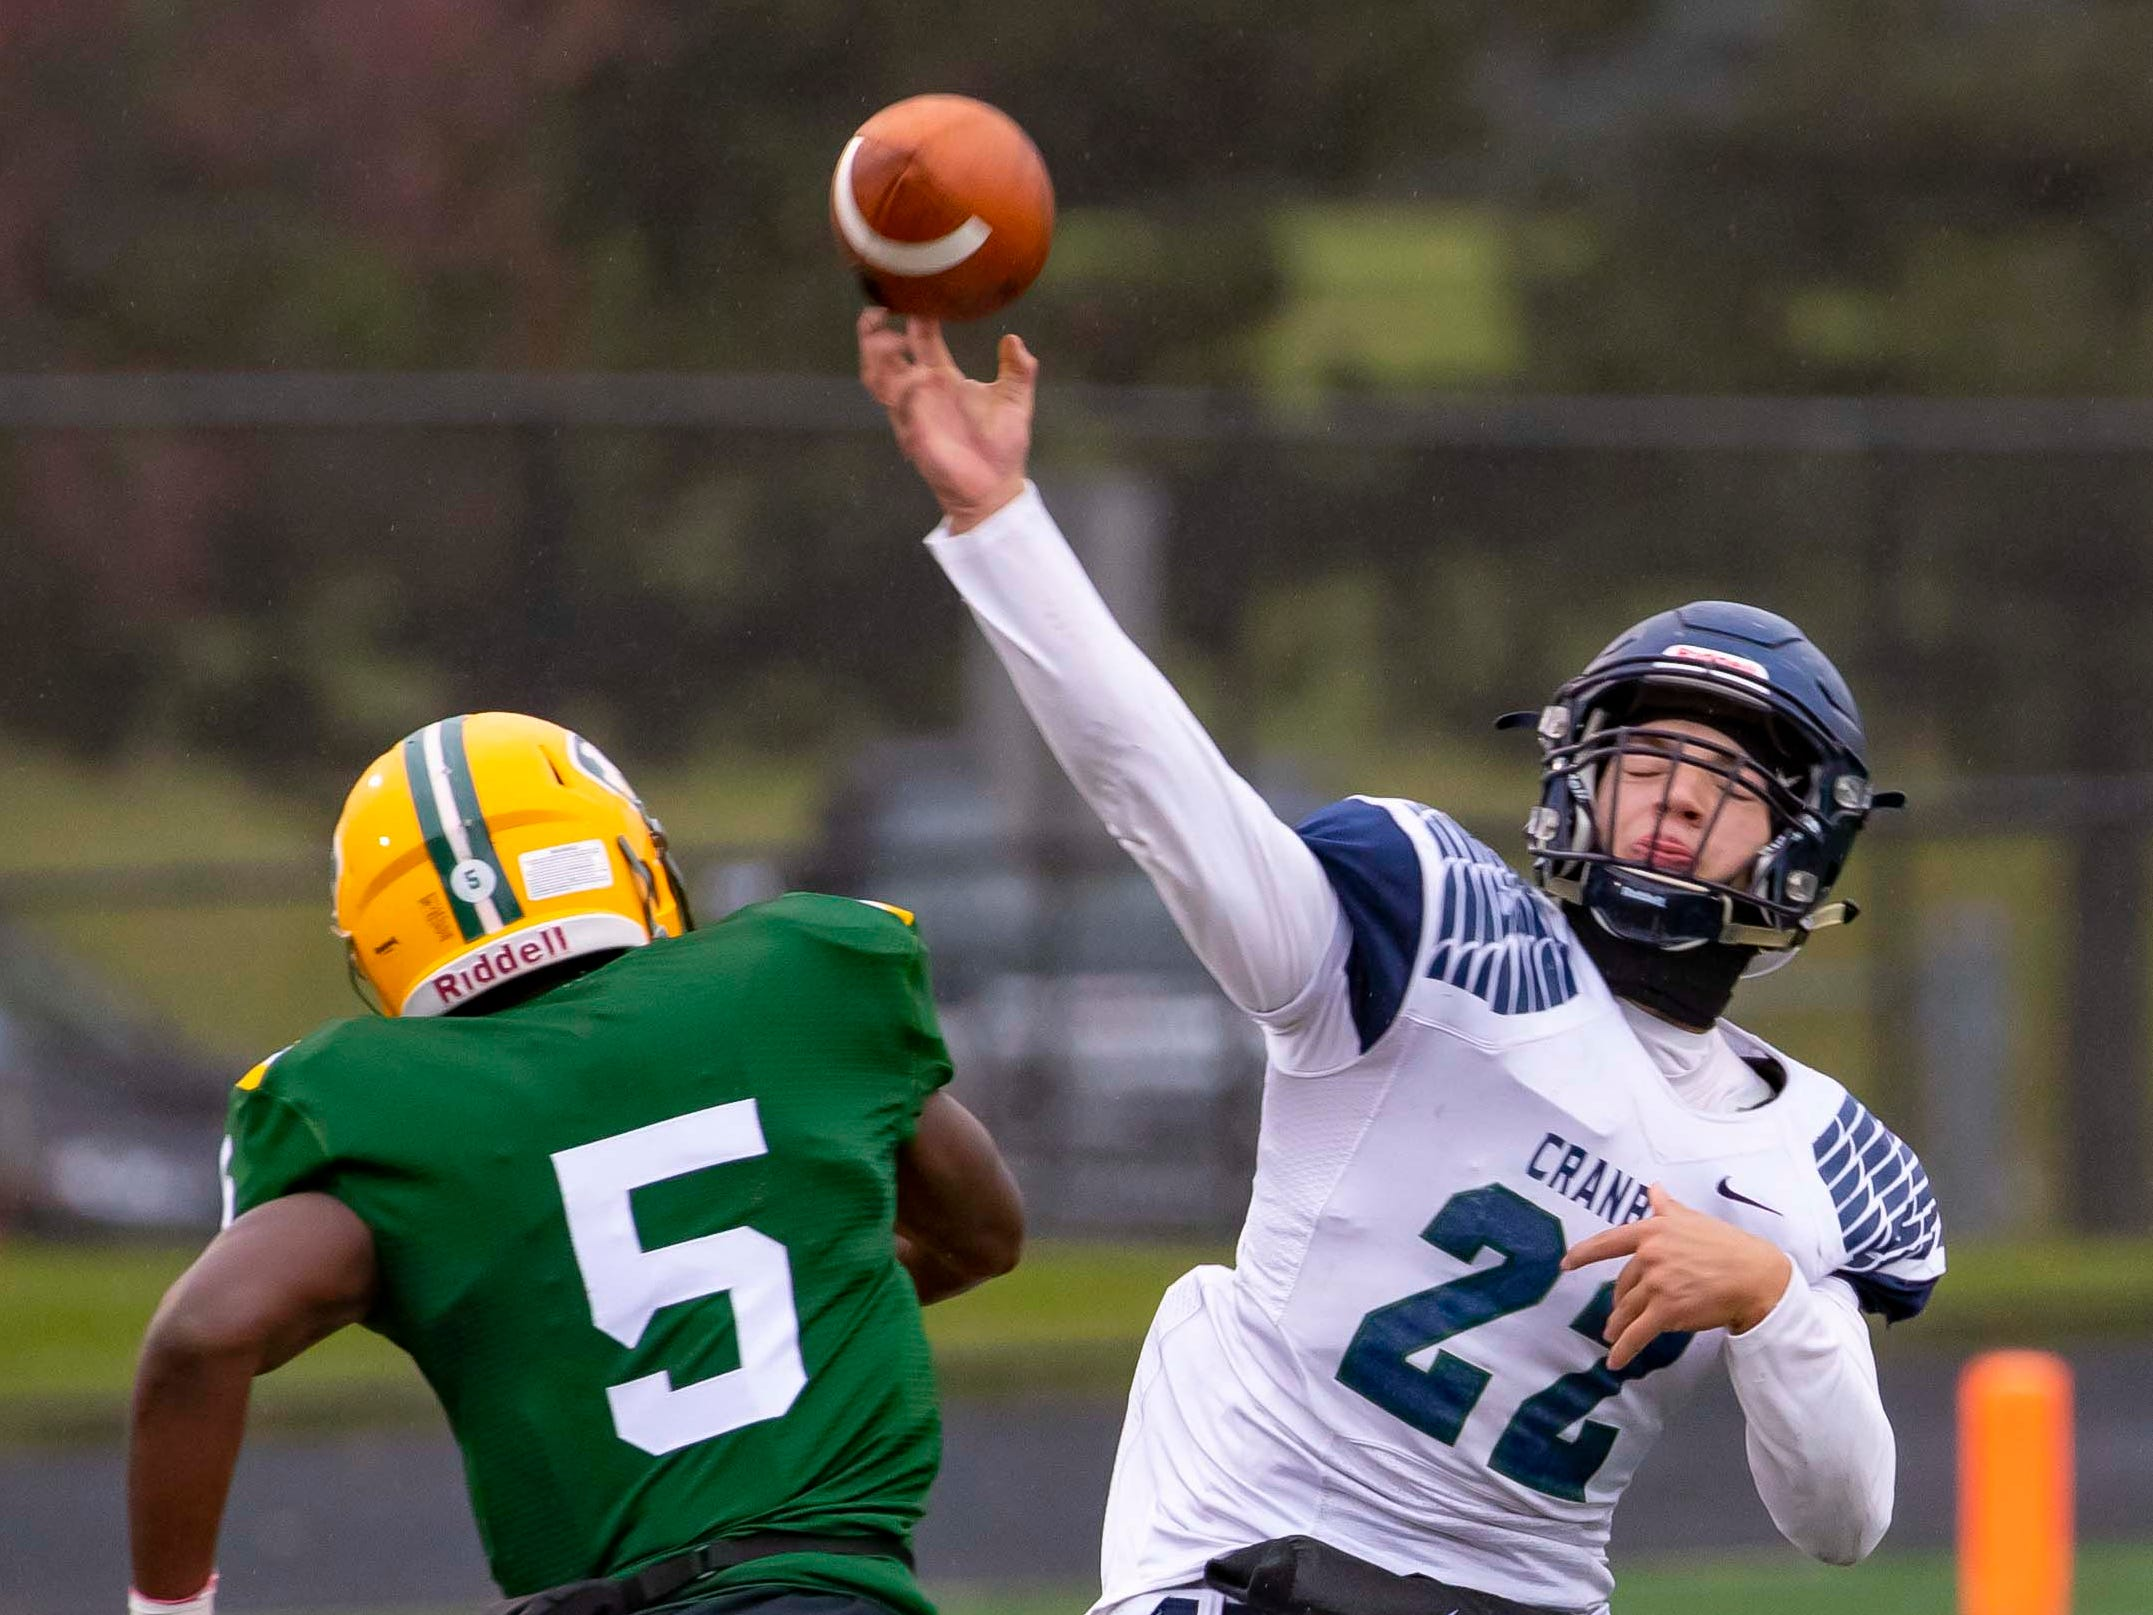 Jack Fairman (22) of Cranbrook Kingswood throws the football as Michael Alford (5) of Farmington Hills Harrison pressures in the first half.